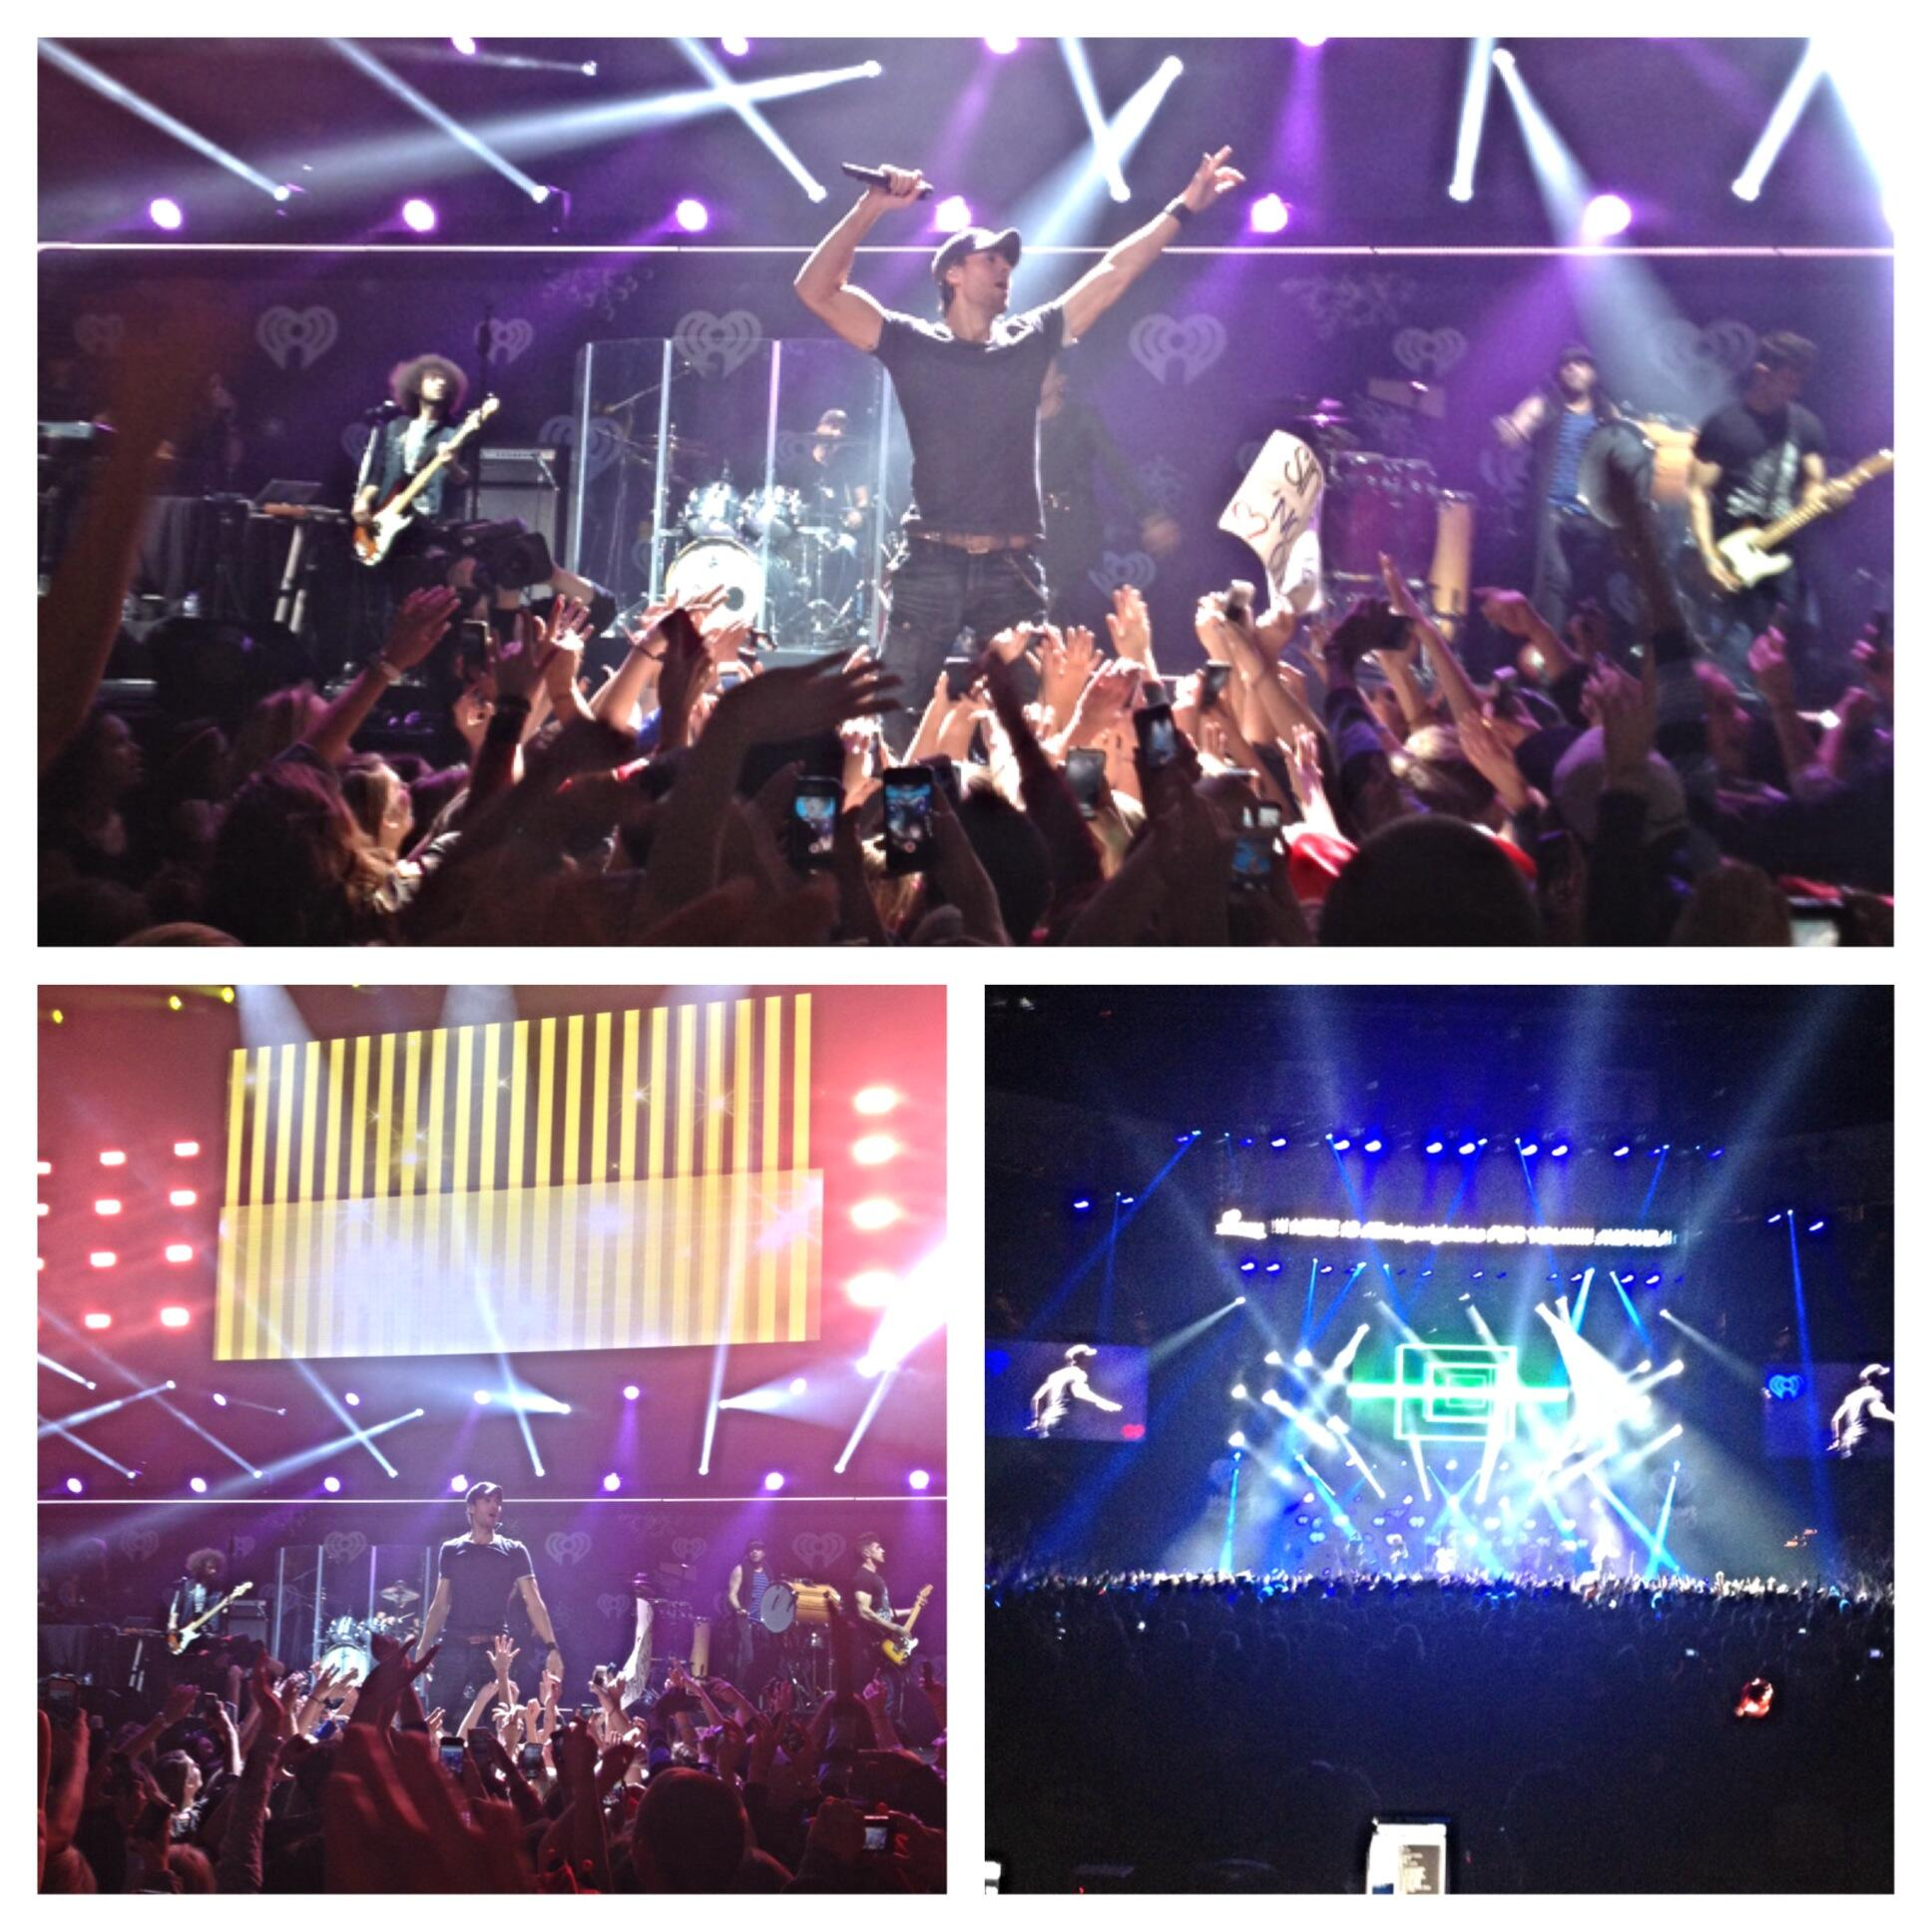 Thank you Minneapolis! #JingleBall2013 http://t.co/cf36fzinzH http://t.co/iYMlMVm3FH